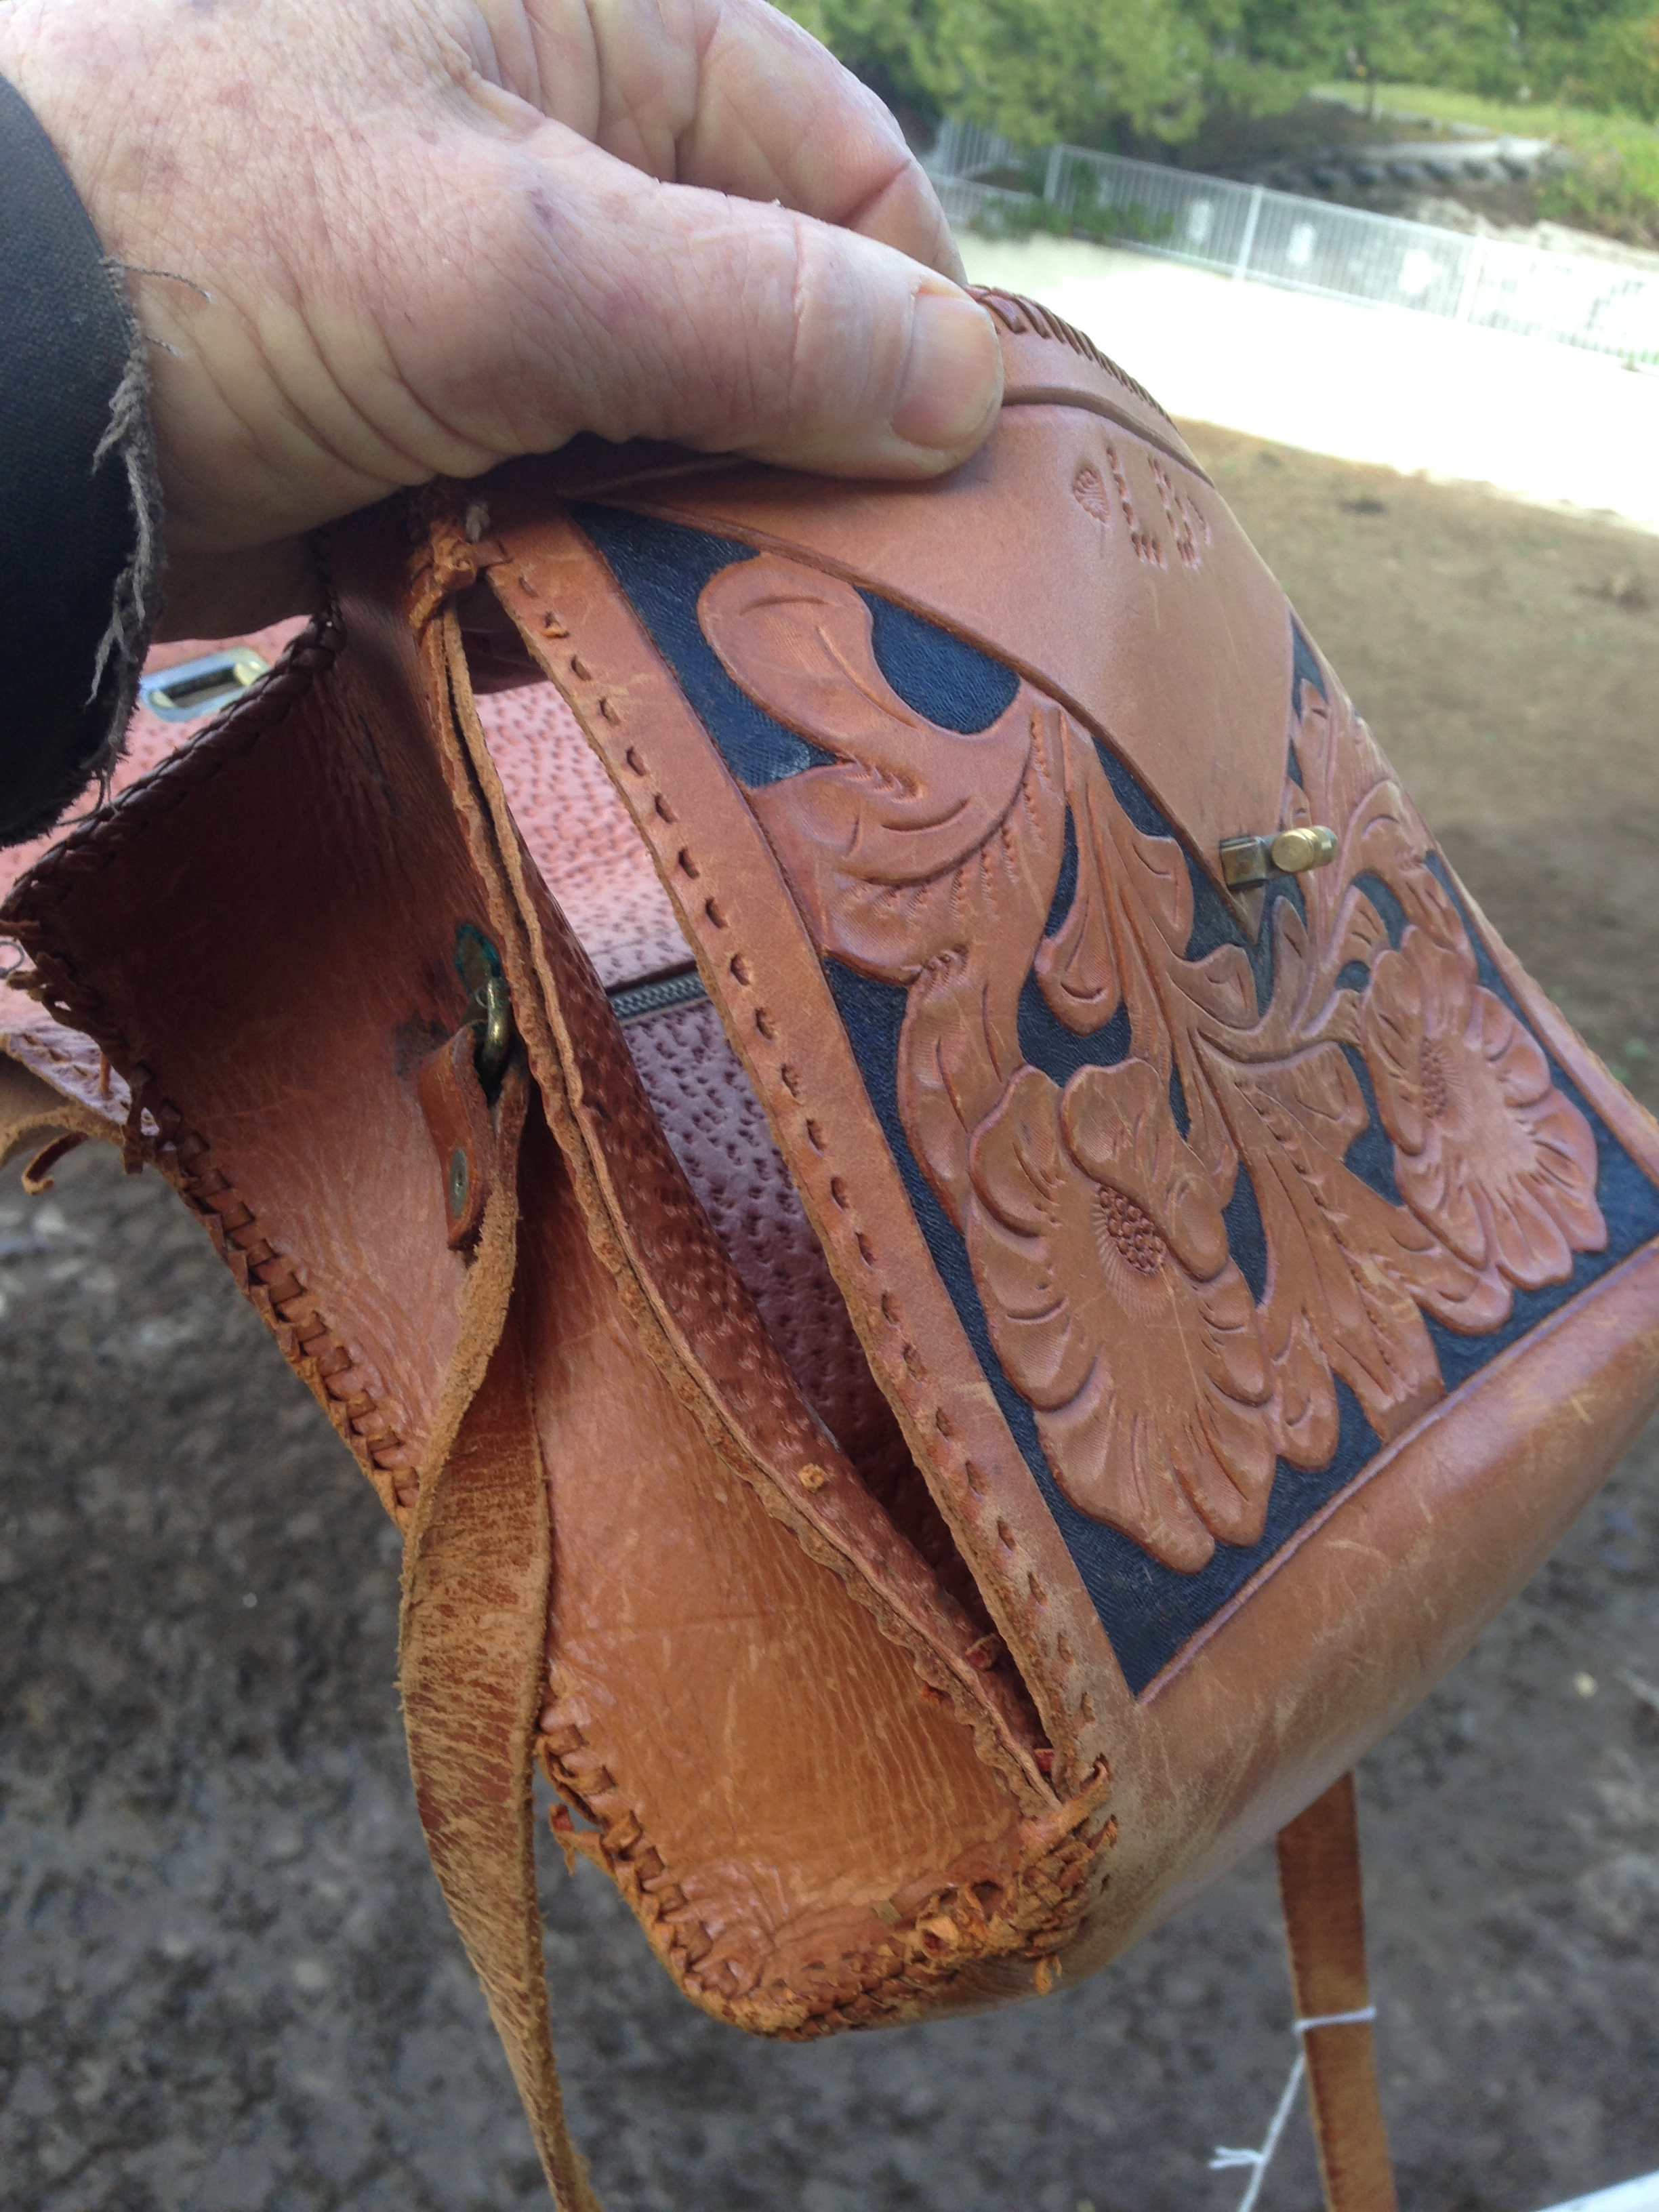 This purse was a valued heirloom whose leather stitching had rotted out over many years. We carefully restored it to its former glory/